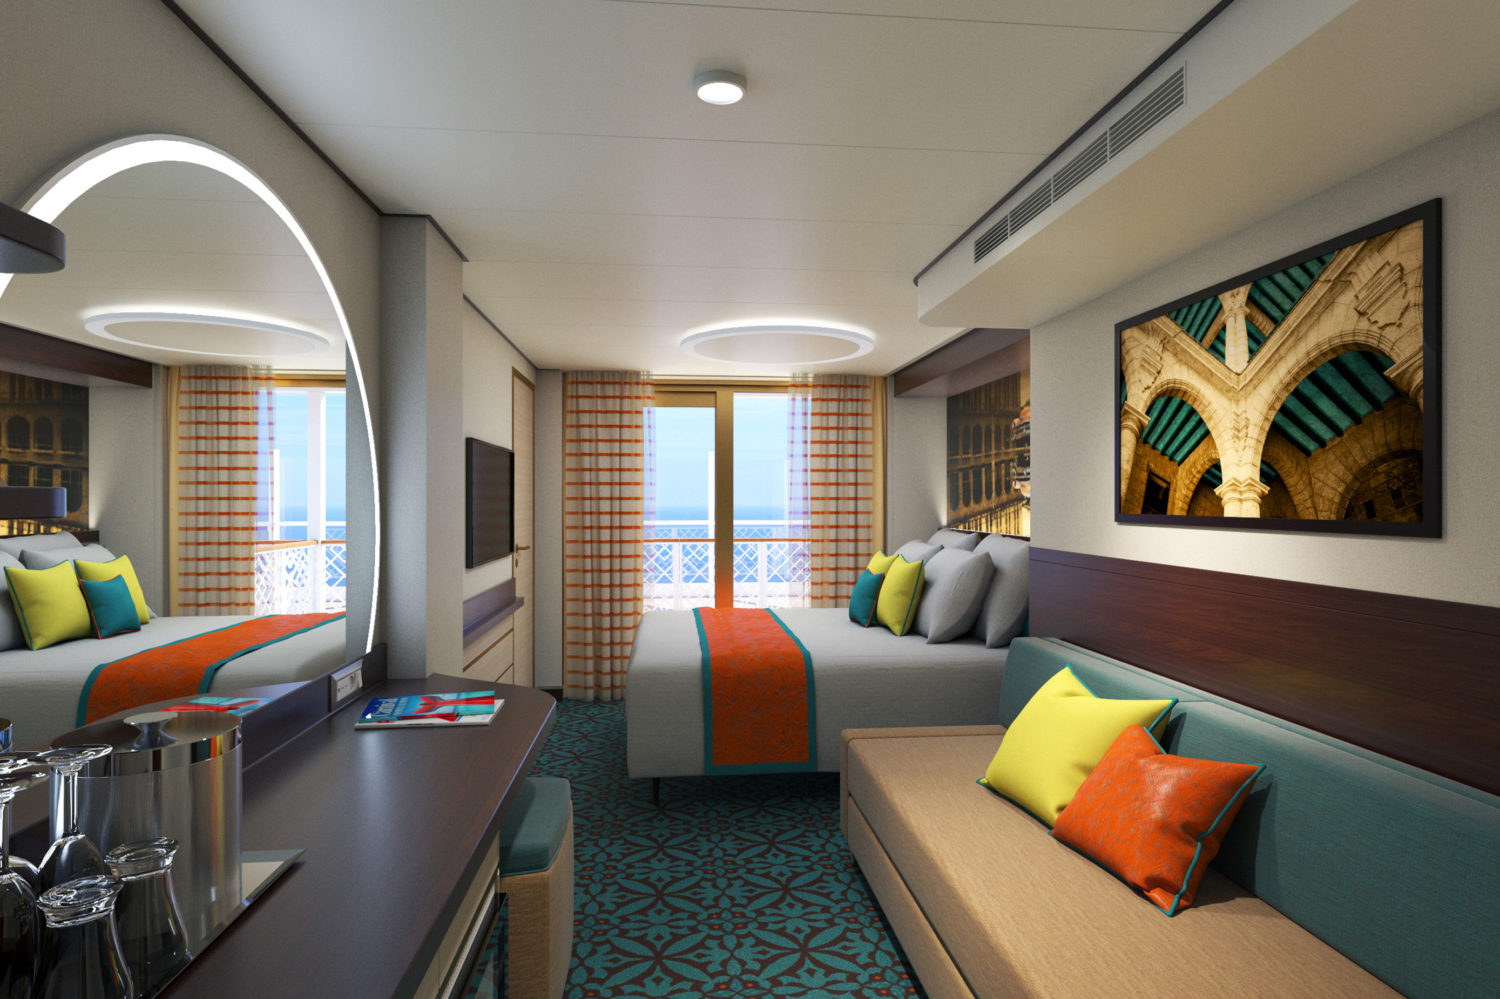 Carnival S New Cruise Ship Mardi Gras Will Feature New Stateroom Design